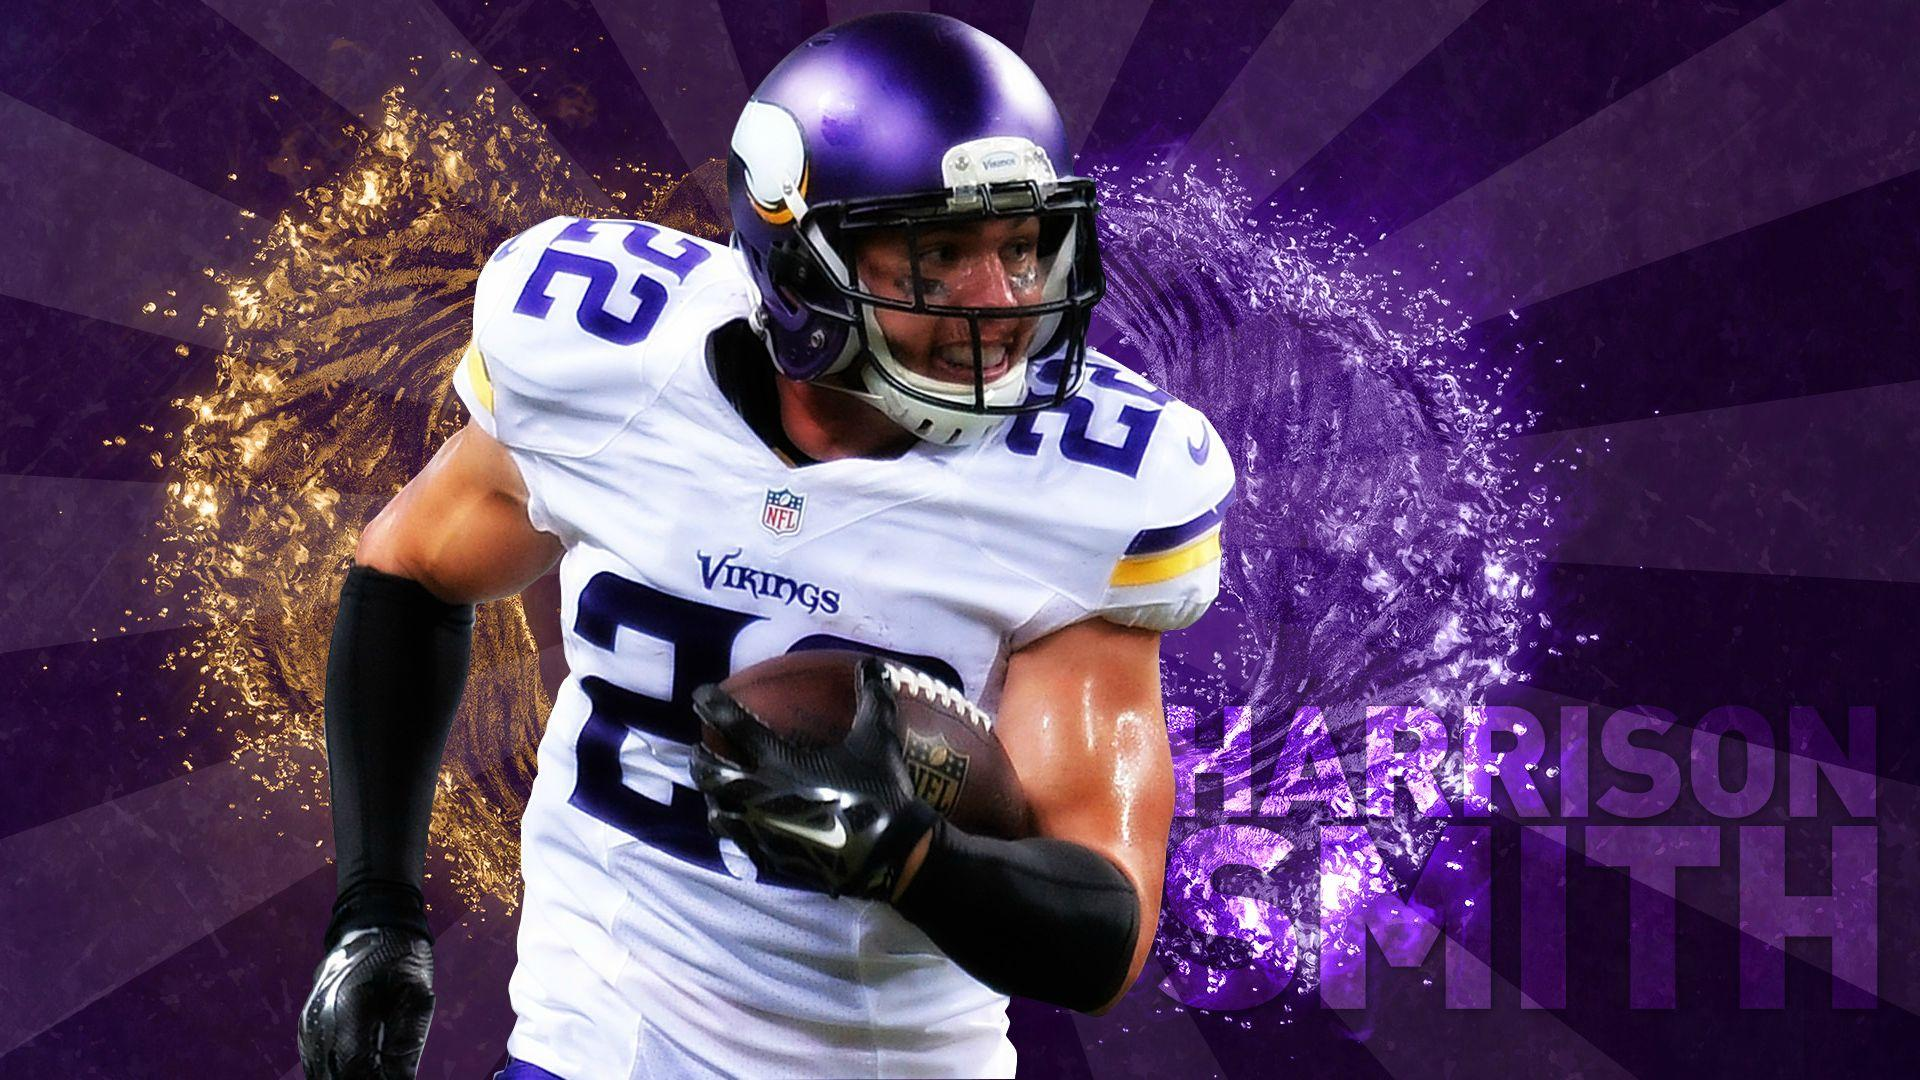 Anybody have any good Harrison smith wallpapers? : minnesotavikings